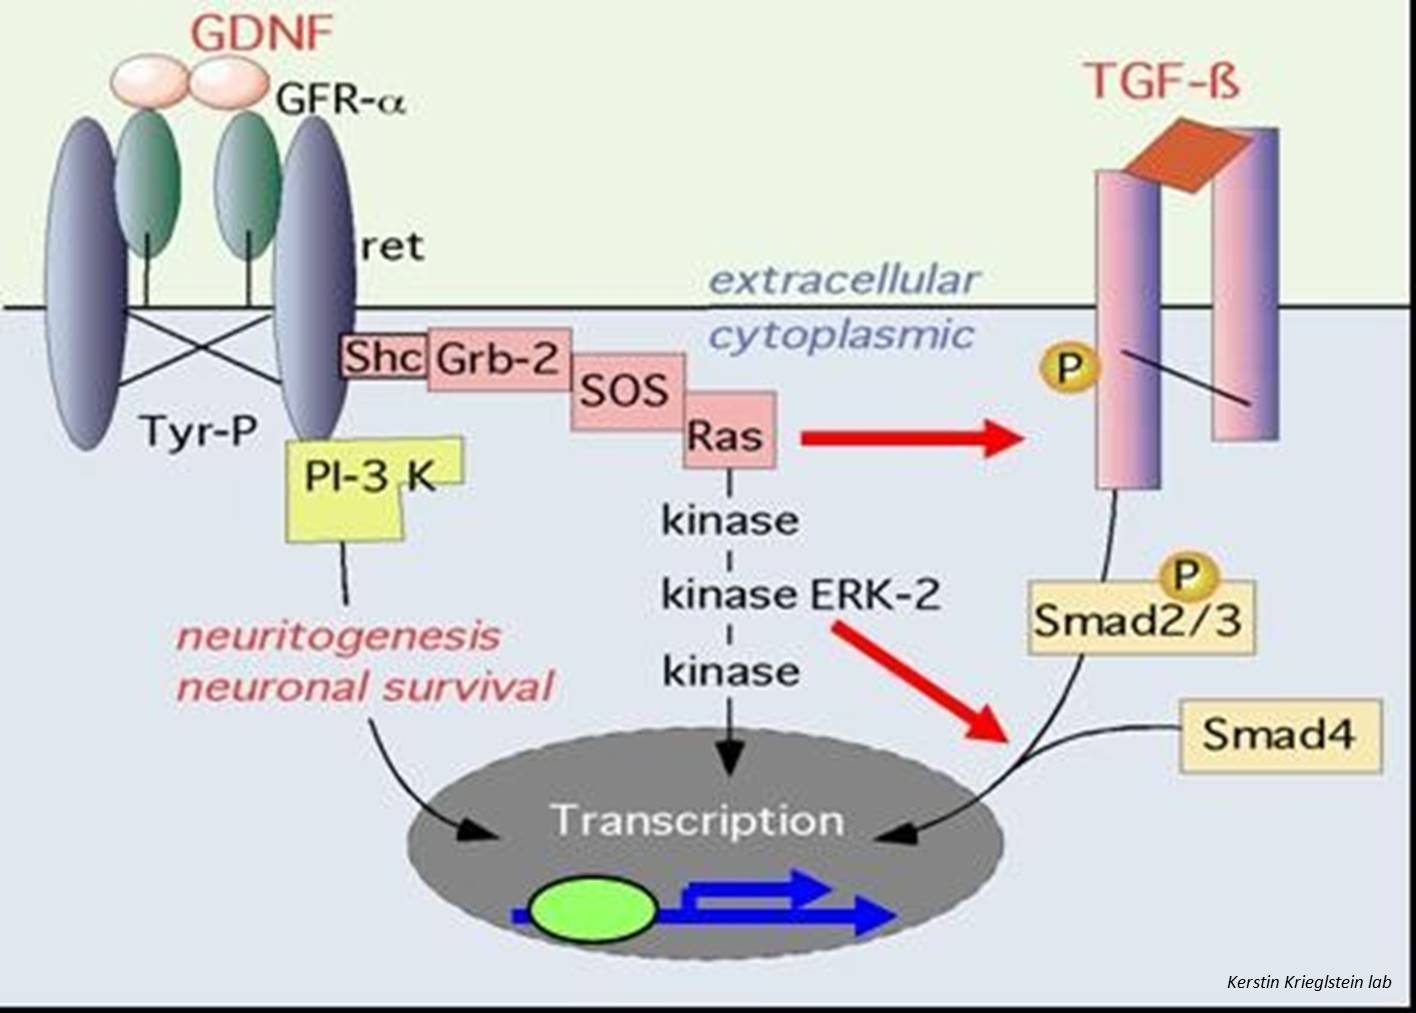 GDNF, an important regulator of dopamine neurons in the brain